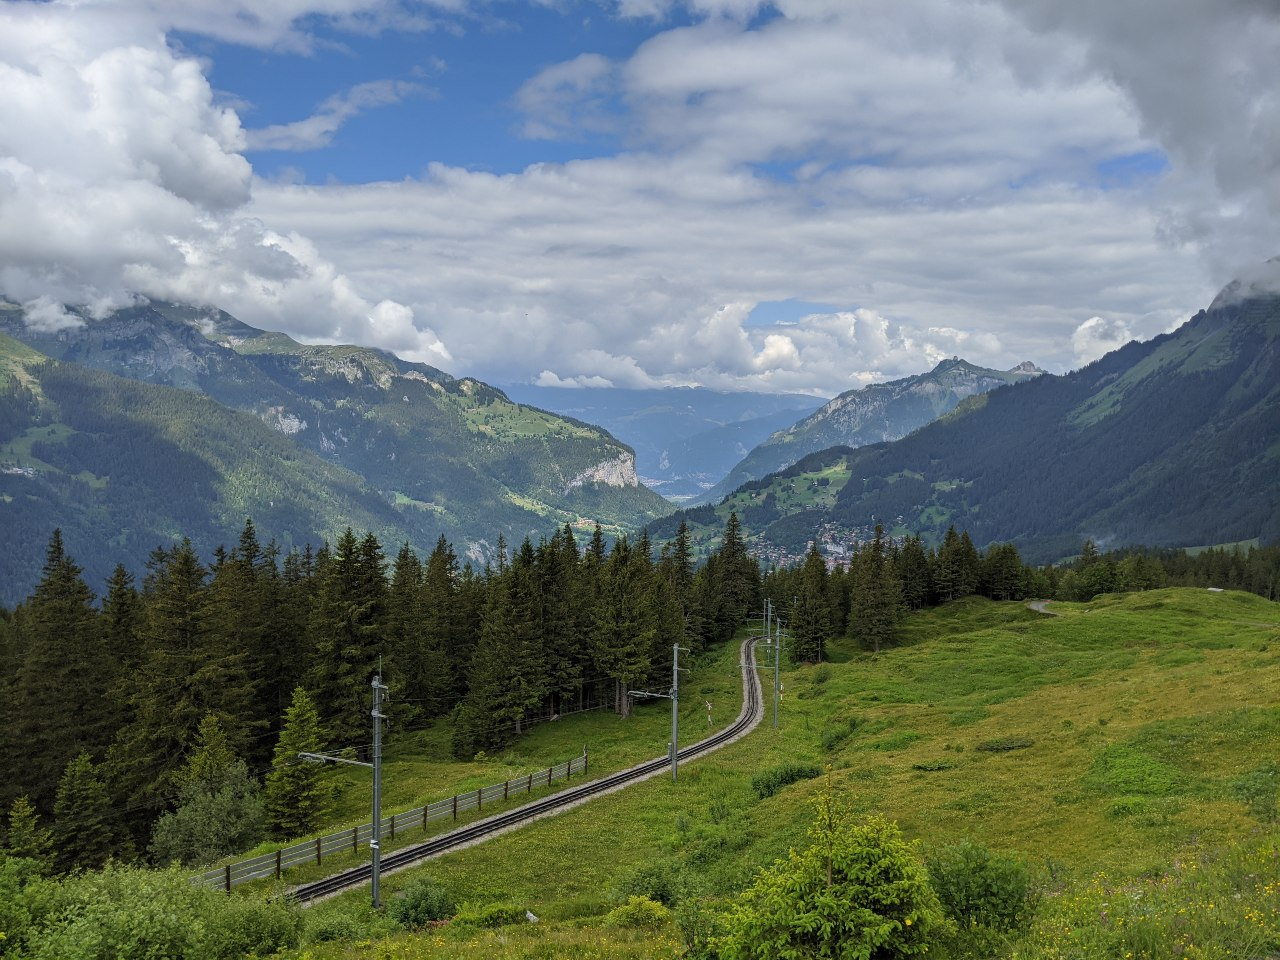 View from the Via Alpina hiking trail to Wengen, Switzerland. On it the track of the Wengernalpbahn railway. In the background a view of Lauterbrunnen valley.